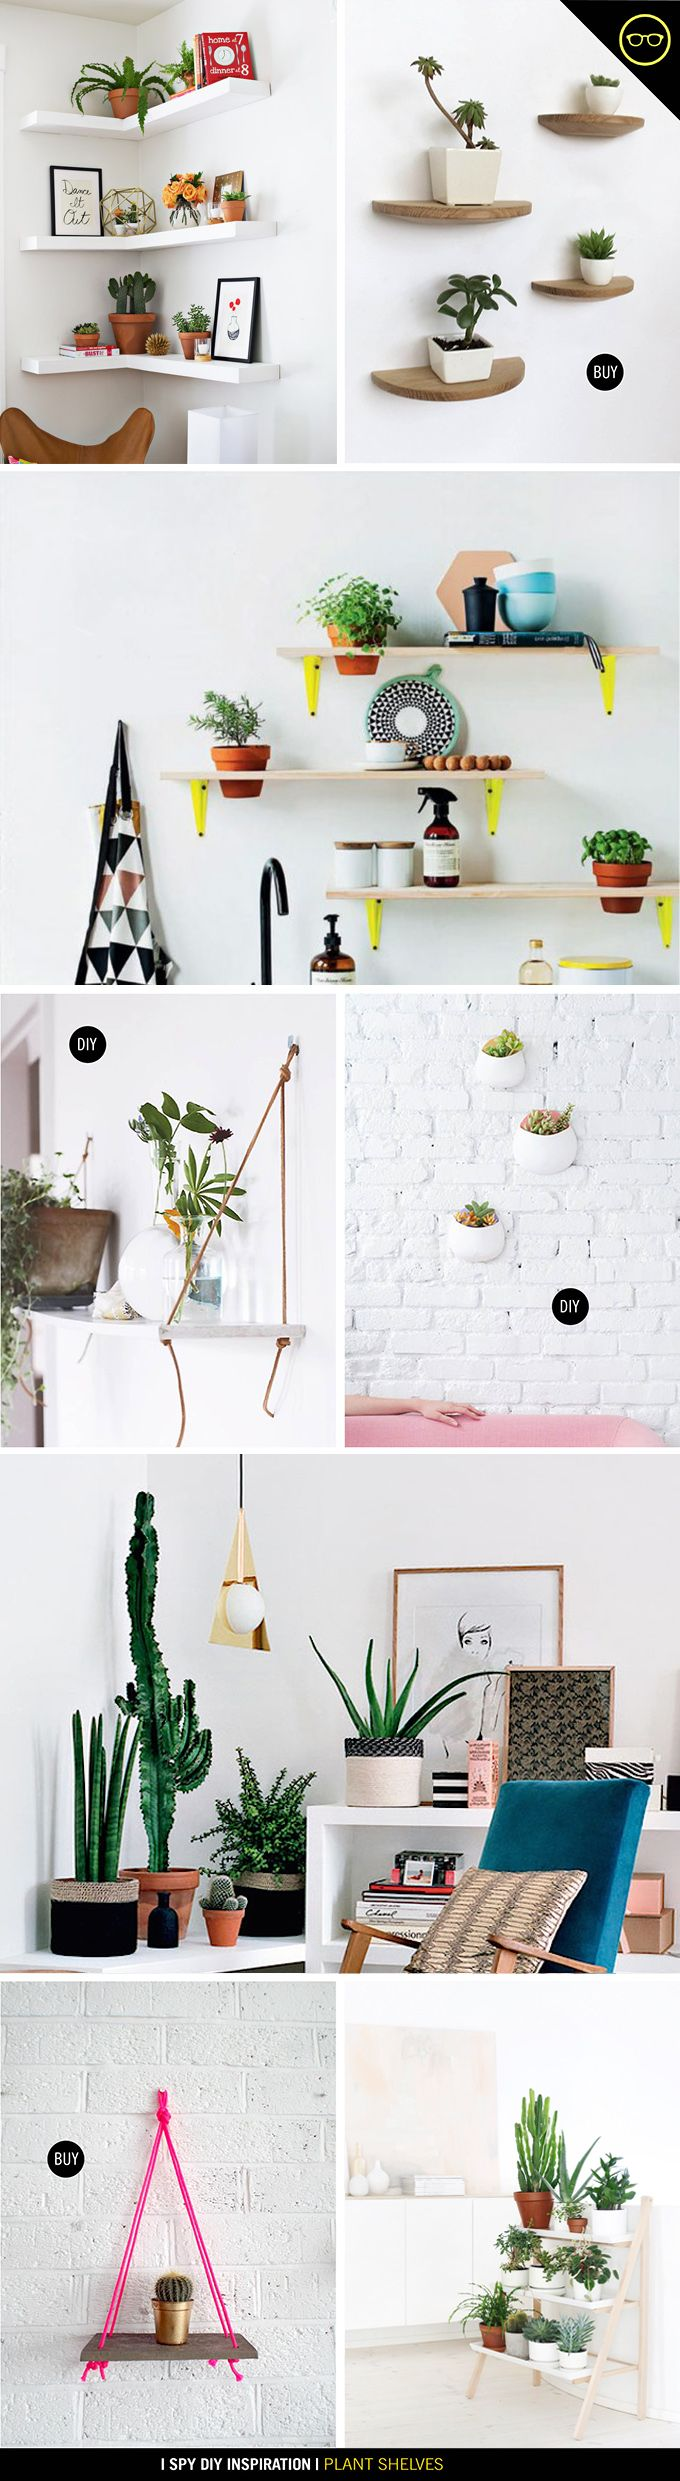 INSPIRATION | Plant Shelves